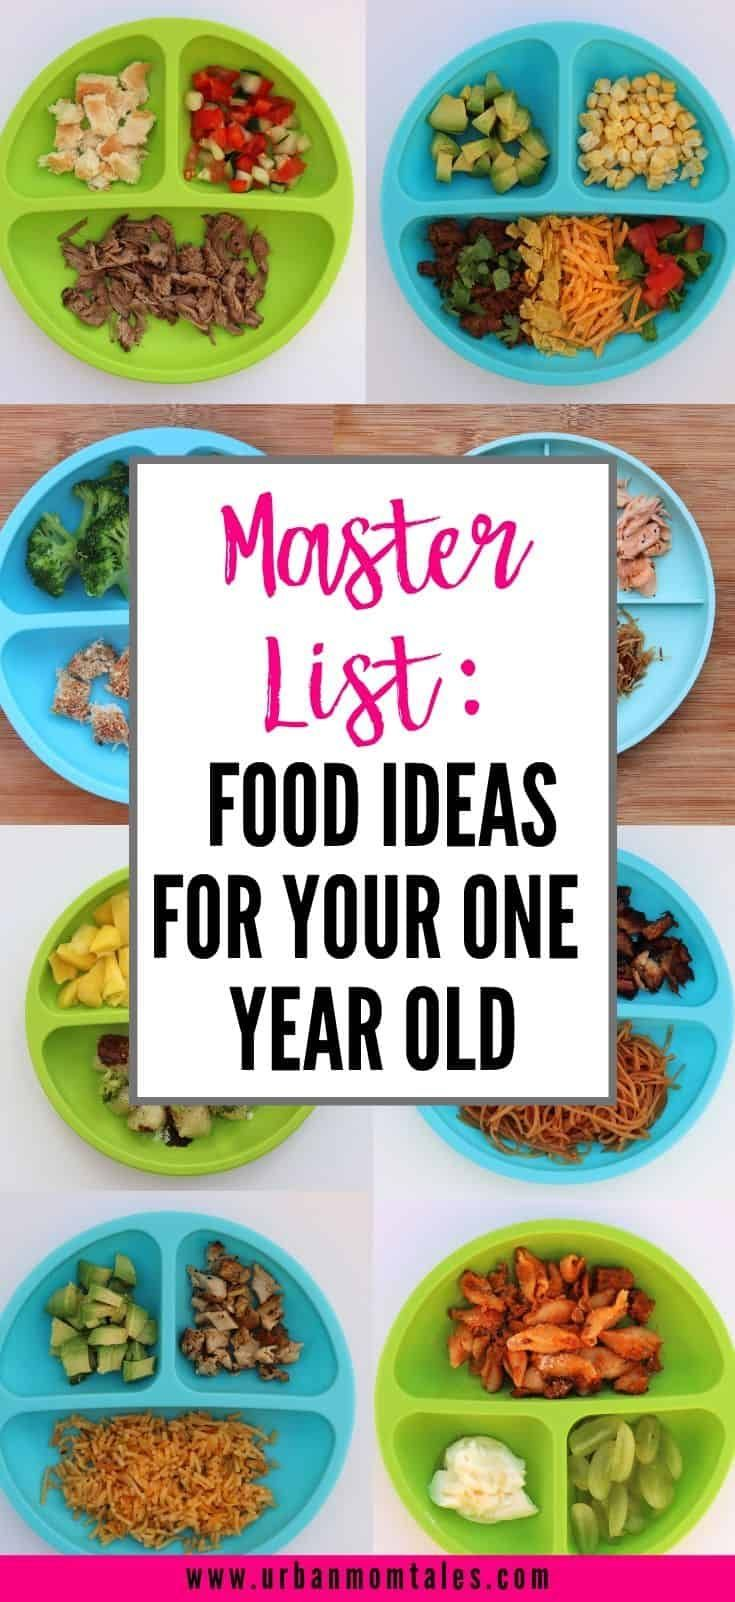 Master List Of All The Food Ideas For 1 Year Old Babies In 2020 Healthy Toddler Meals Baby Food Recipes Baby Dinner